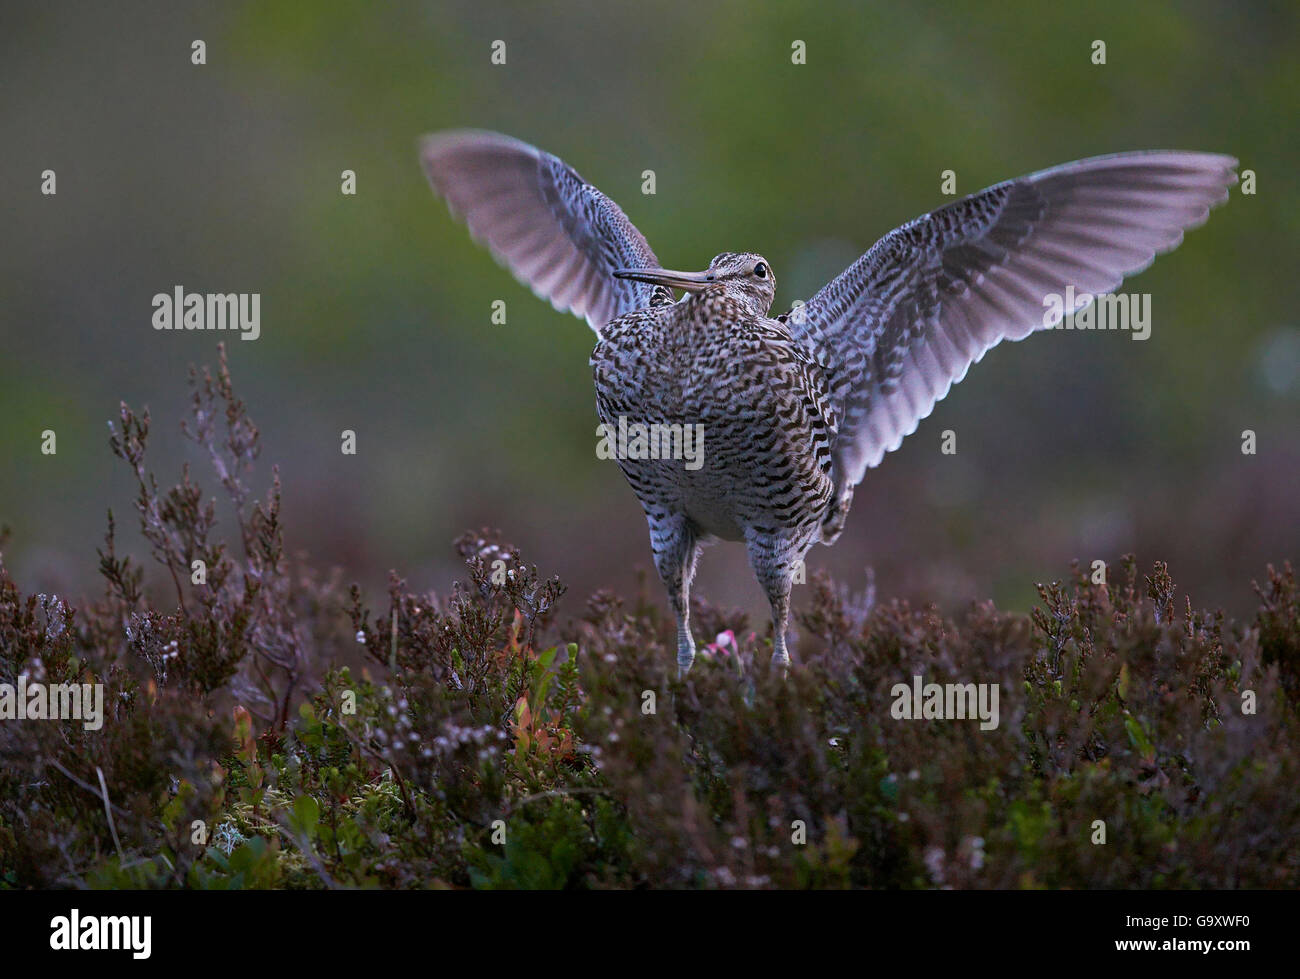 Great snipe (Gallinago media) flapping wings, Norway, June. - Stock Image